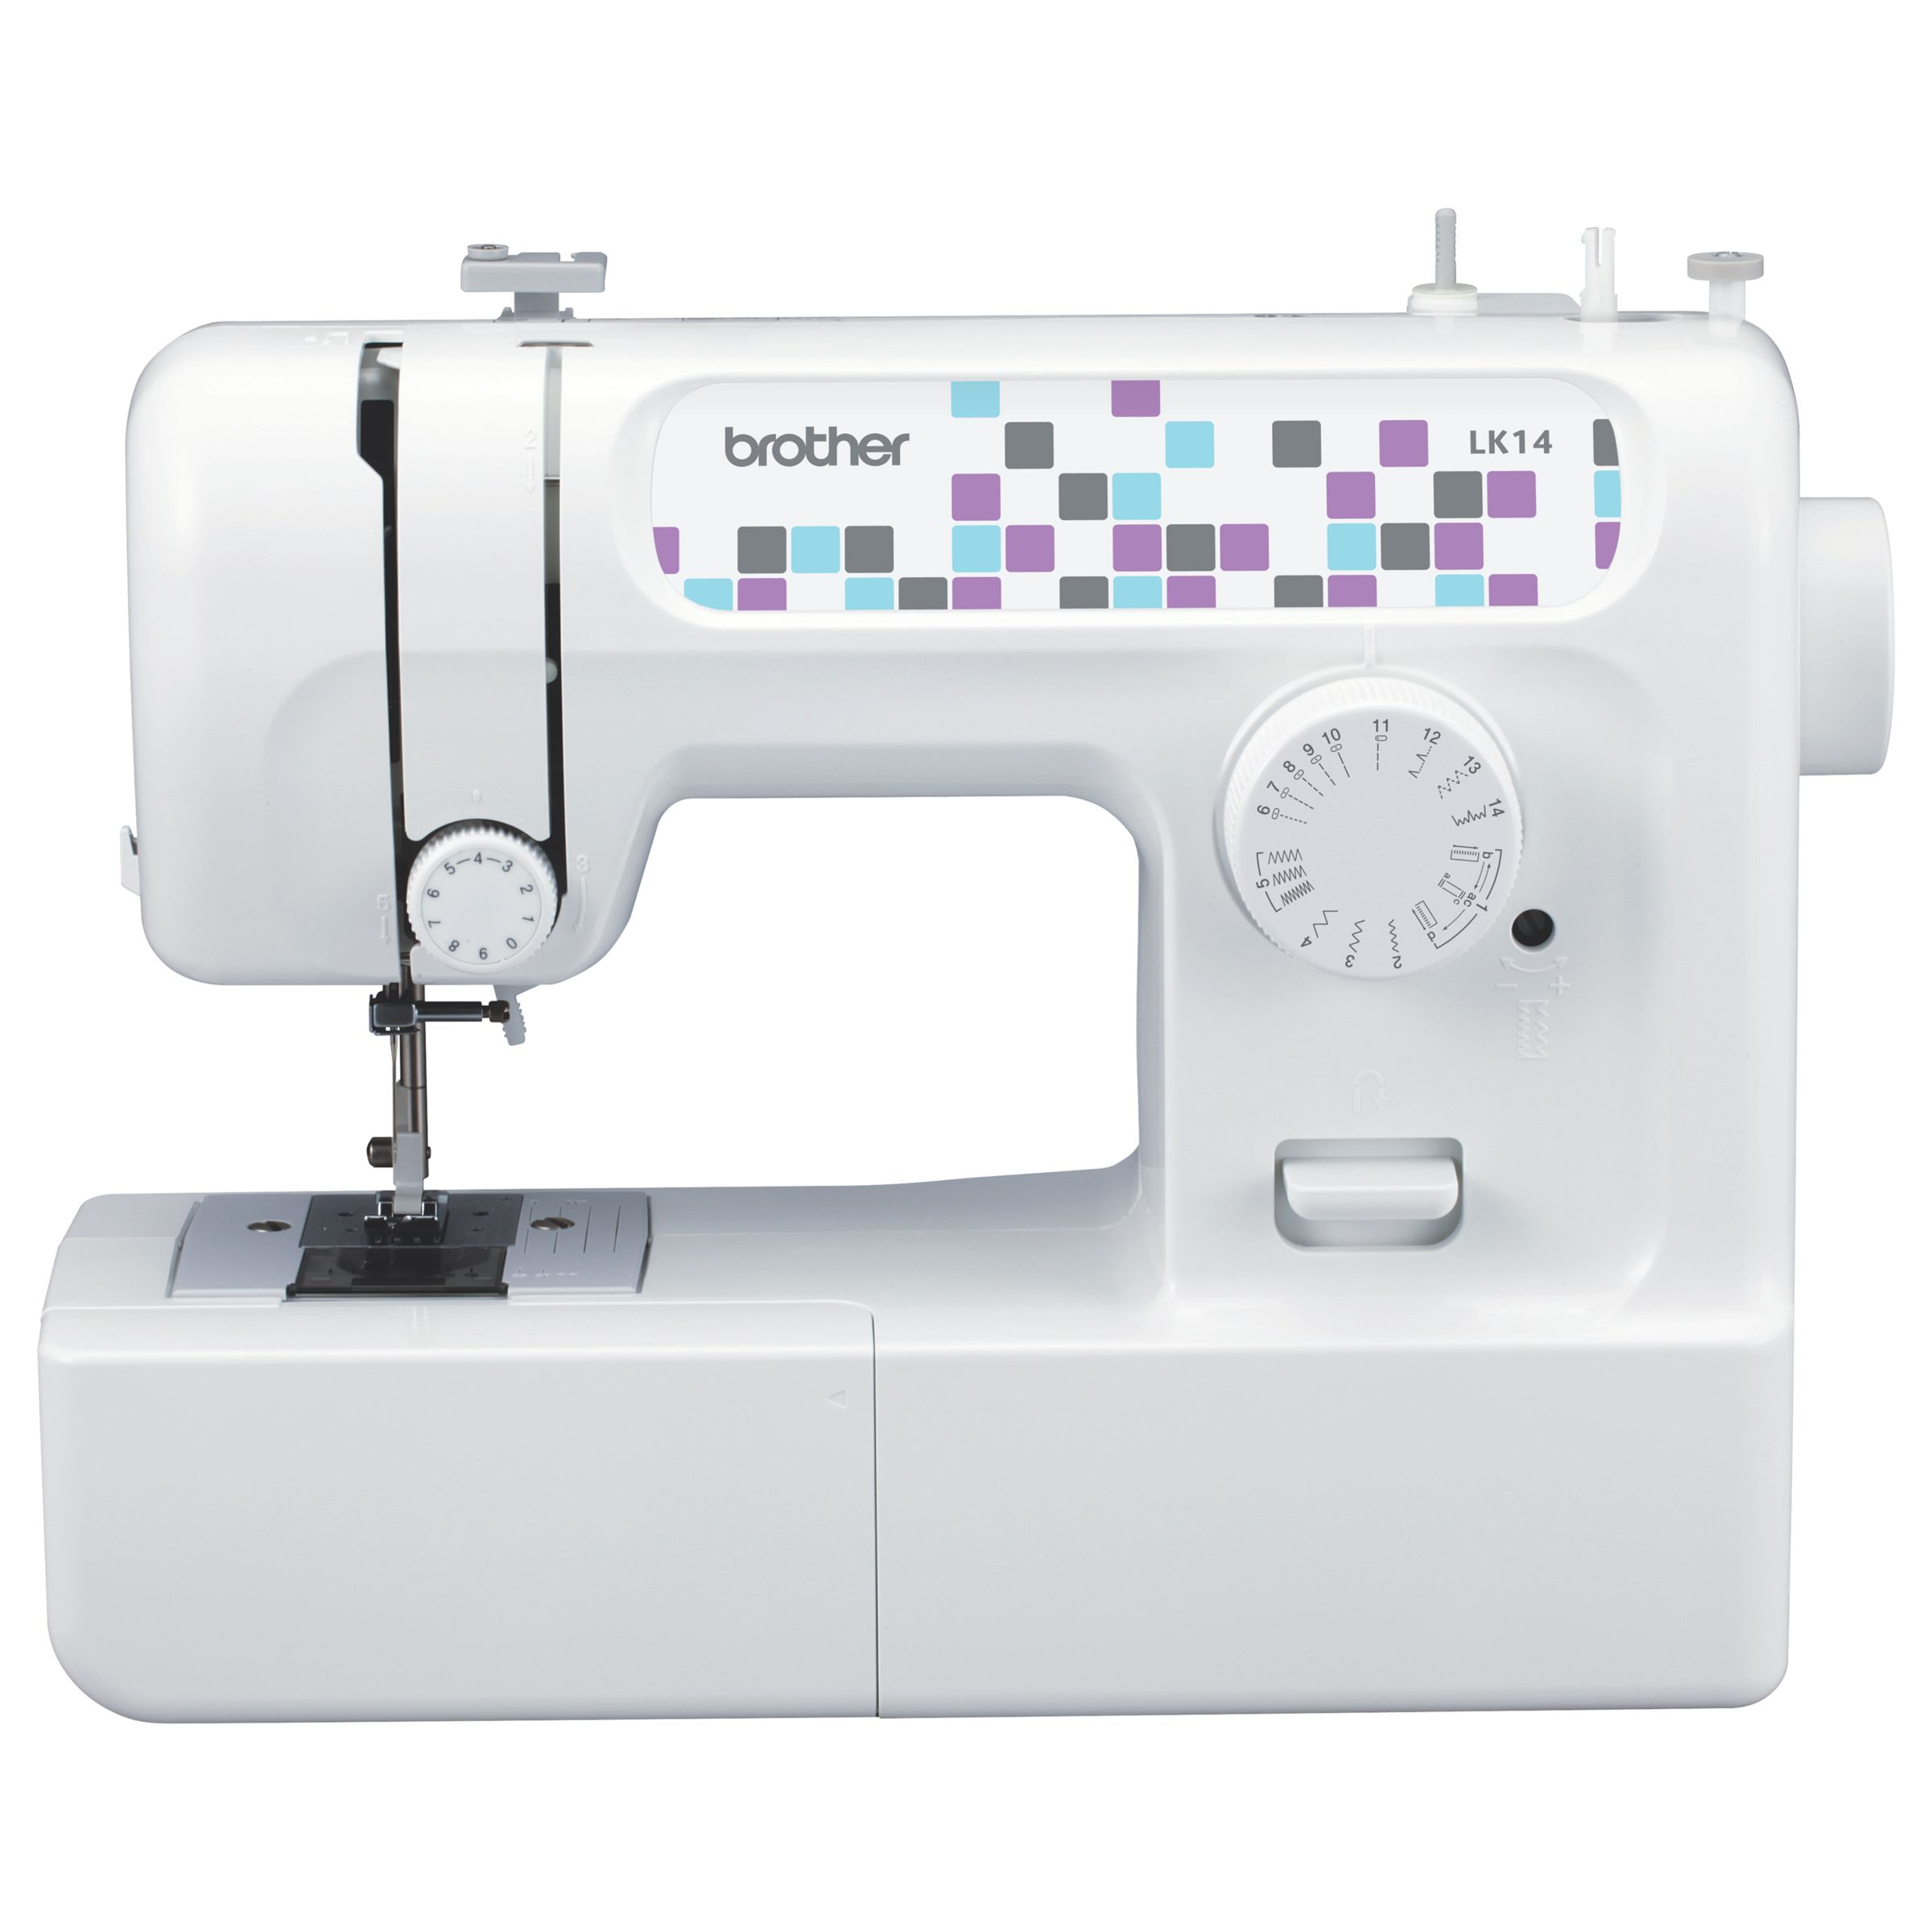 Brother Brother LK14 Sewing Machine, White